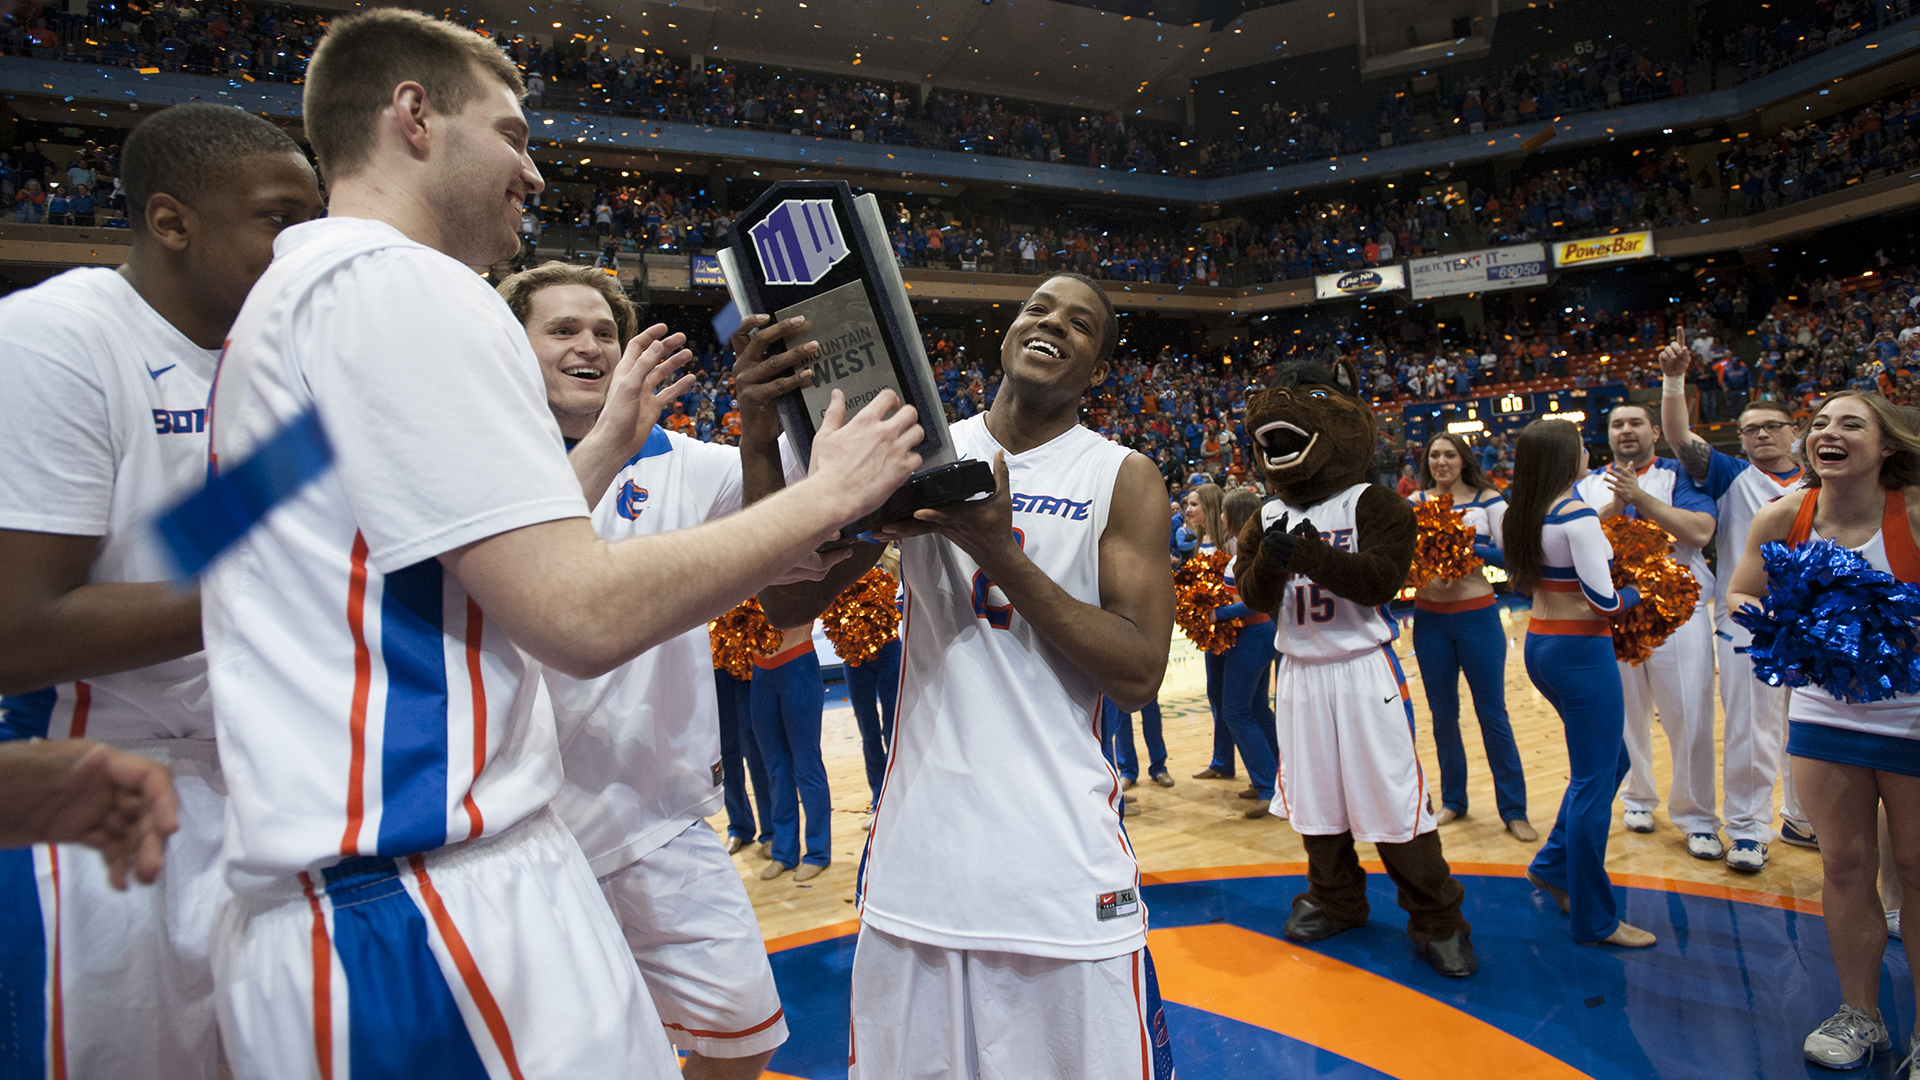 2015: Boise State Basketball wins Mountain West Conference